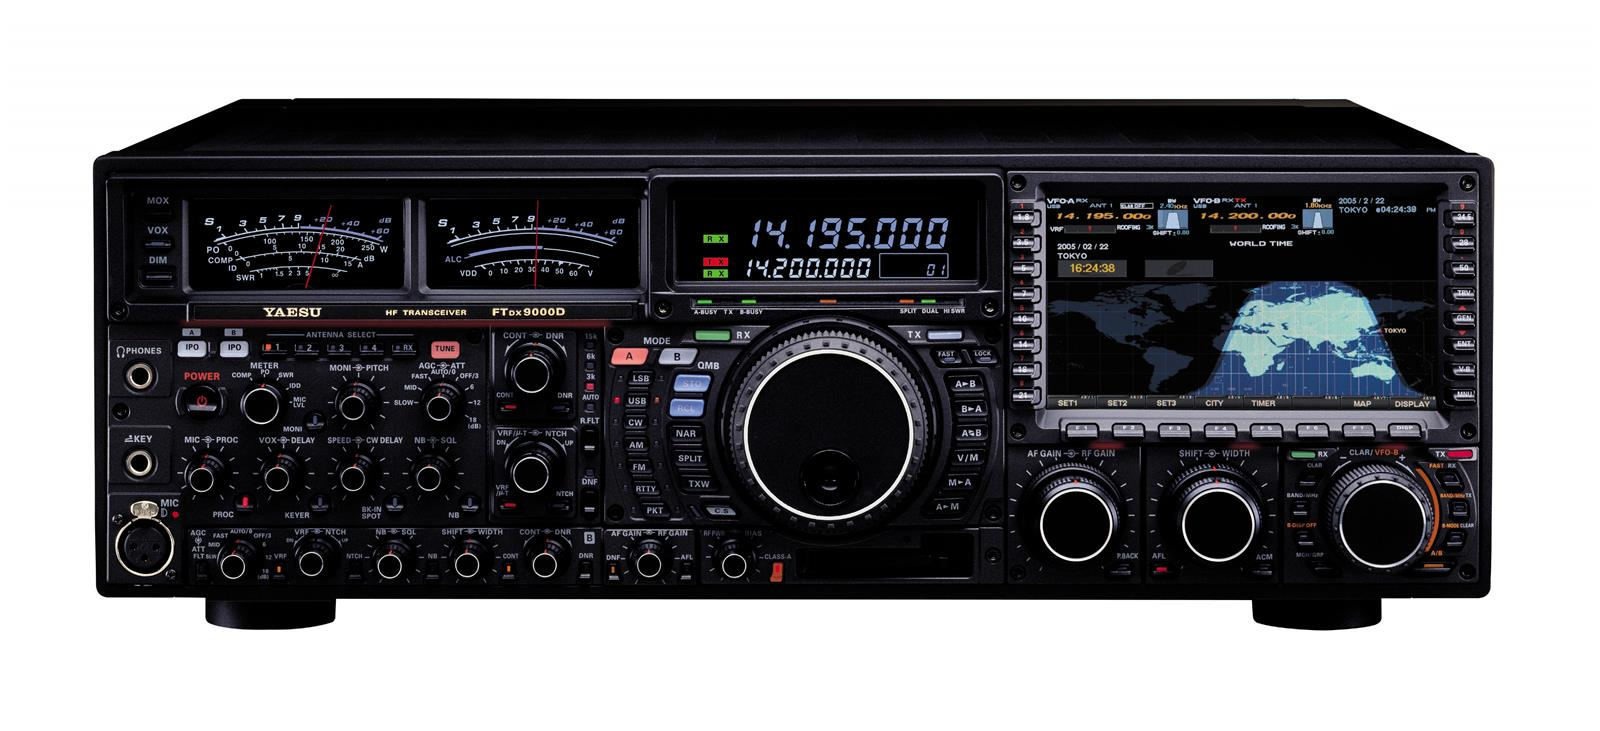 Yaesu ftdx 9000d 200 watt hf50 mhz transceivers ftdx 9000d free yaesu ftdx 9000d 200 watt hf50 mhz transceivers ftdx 9000d free shipping on most orders over 99 at dx engineering gumiabroncs